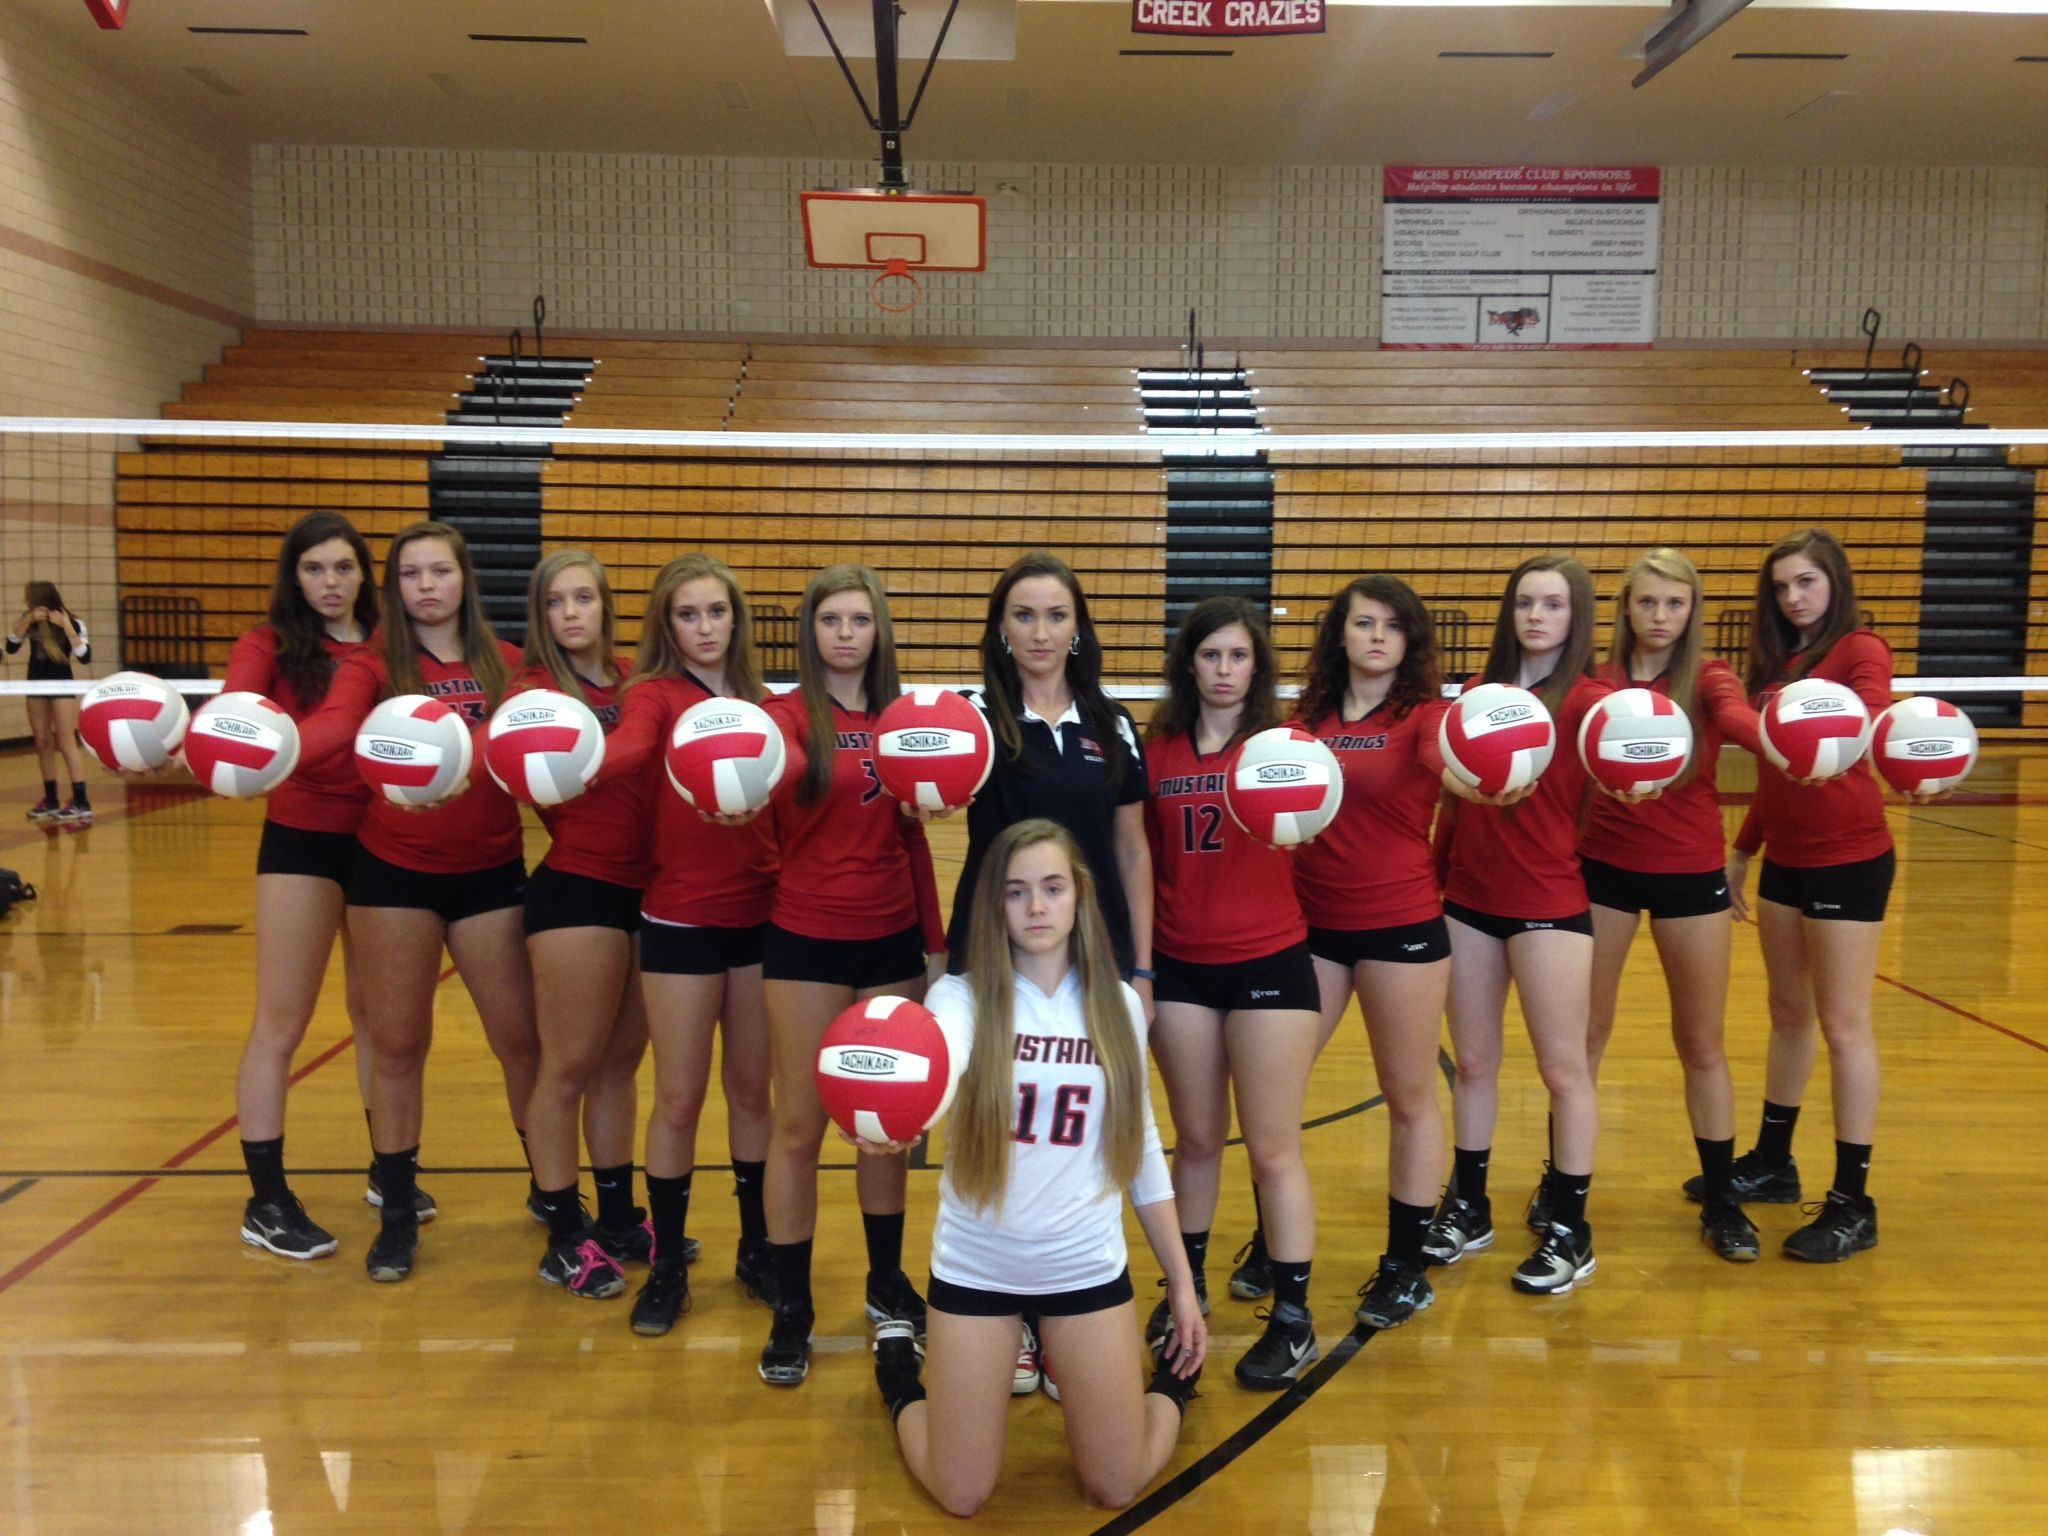 Red Mustang Volleyball Team Red Mustang Volleyball Team Volleyball